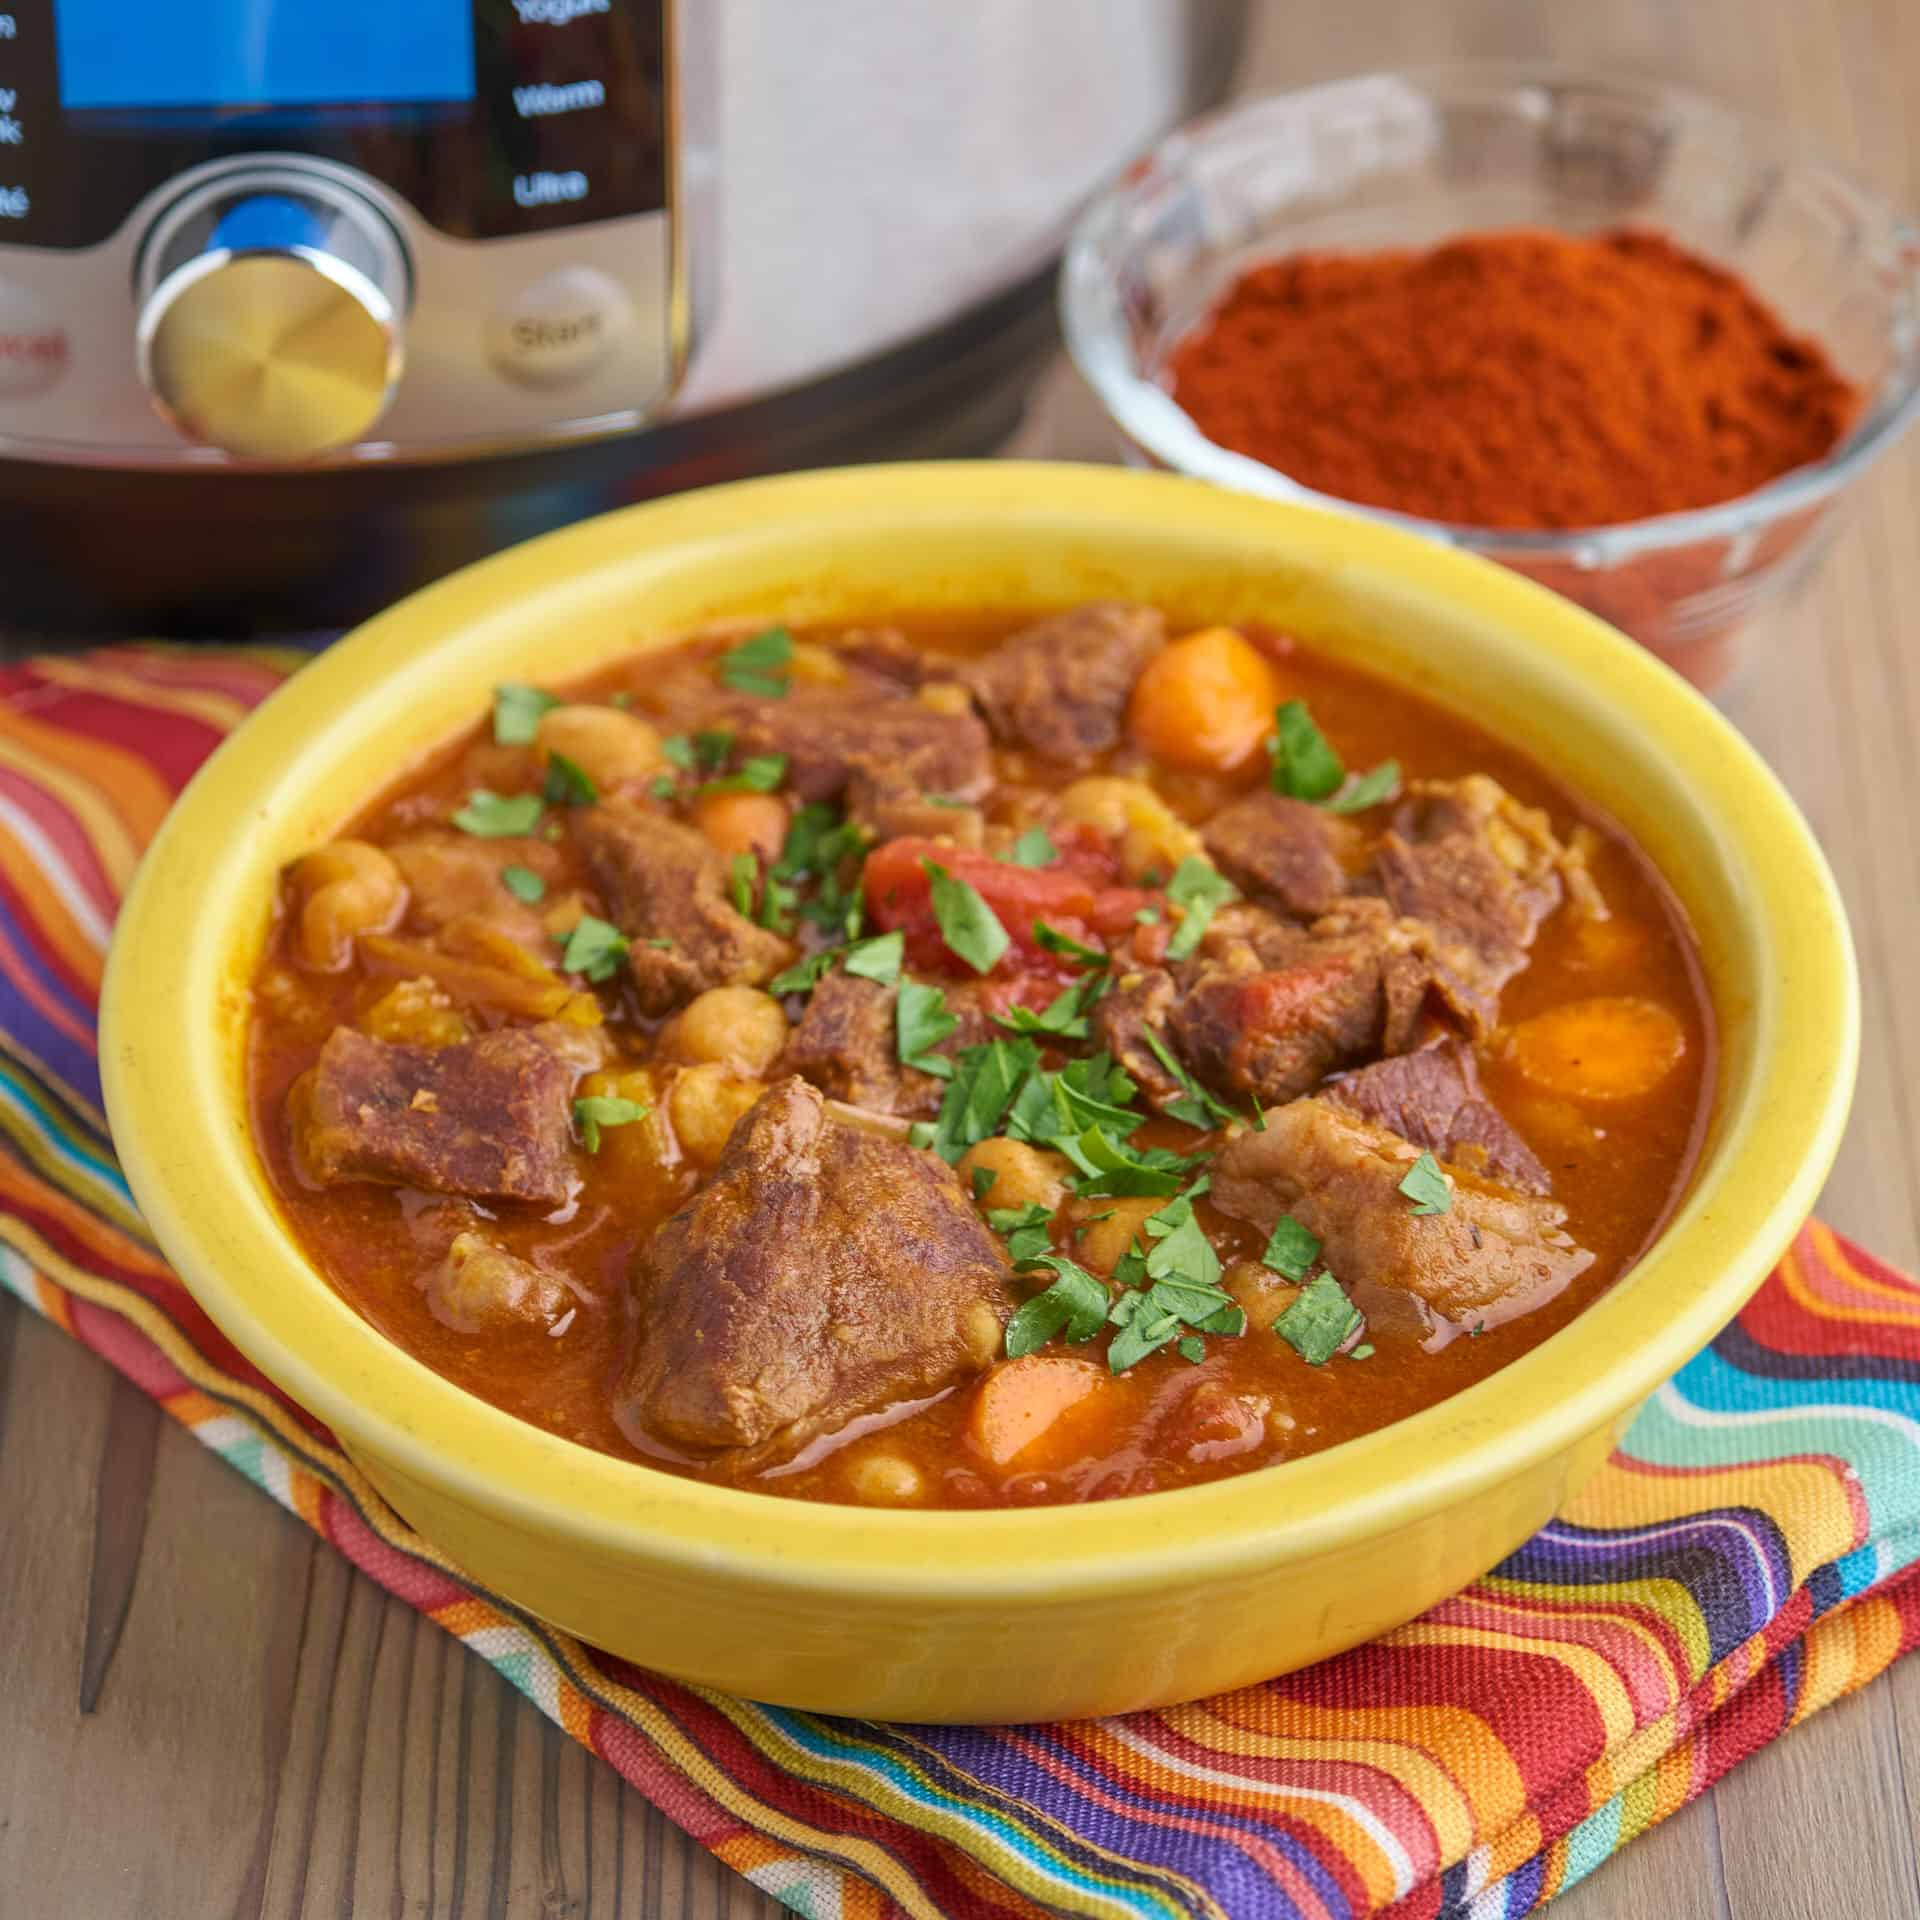 A bowl of Spanish beef stew in front of a dish of smoked spanish paprika - pimenton de la Vera - and an Instant Pot